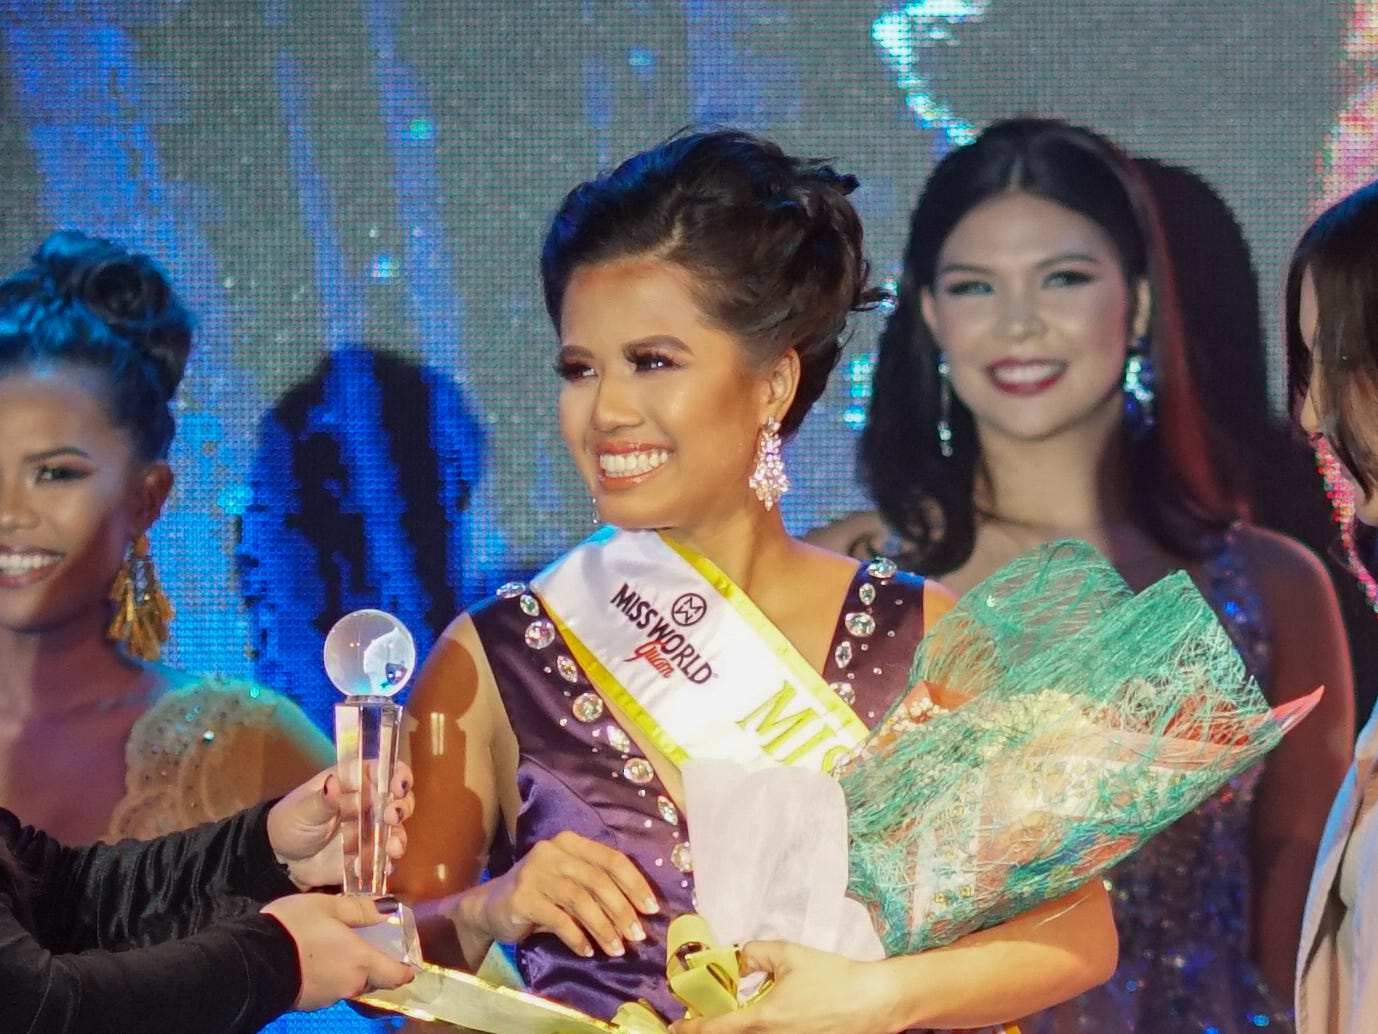 Grace Enriquez, 24, of Barrigada, 6th contestant wins the Miss Congeniality award at the  2018 Miss World Guam pageant held at Sheraton Laguna Guam Resort.